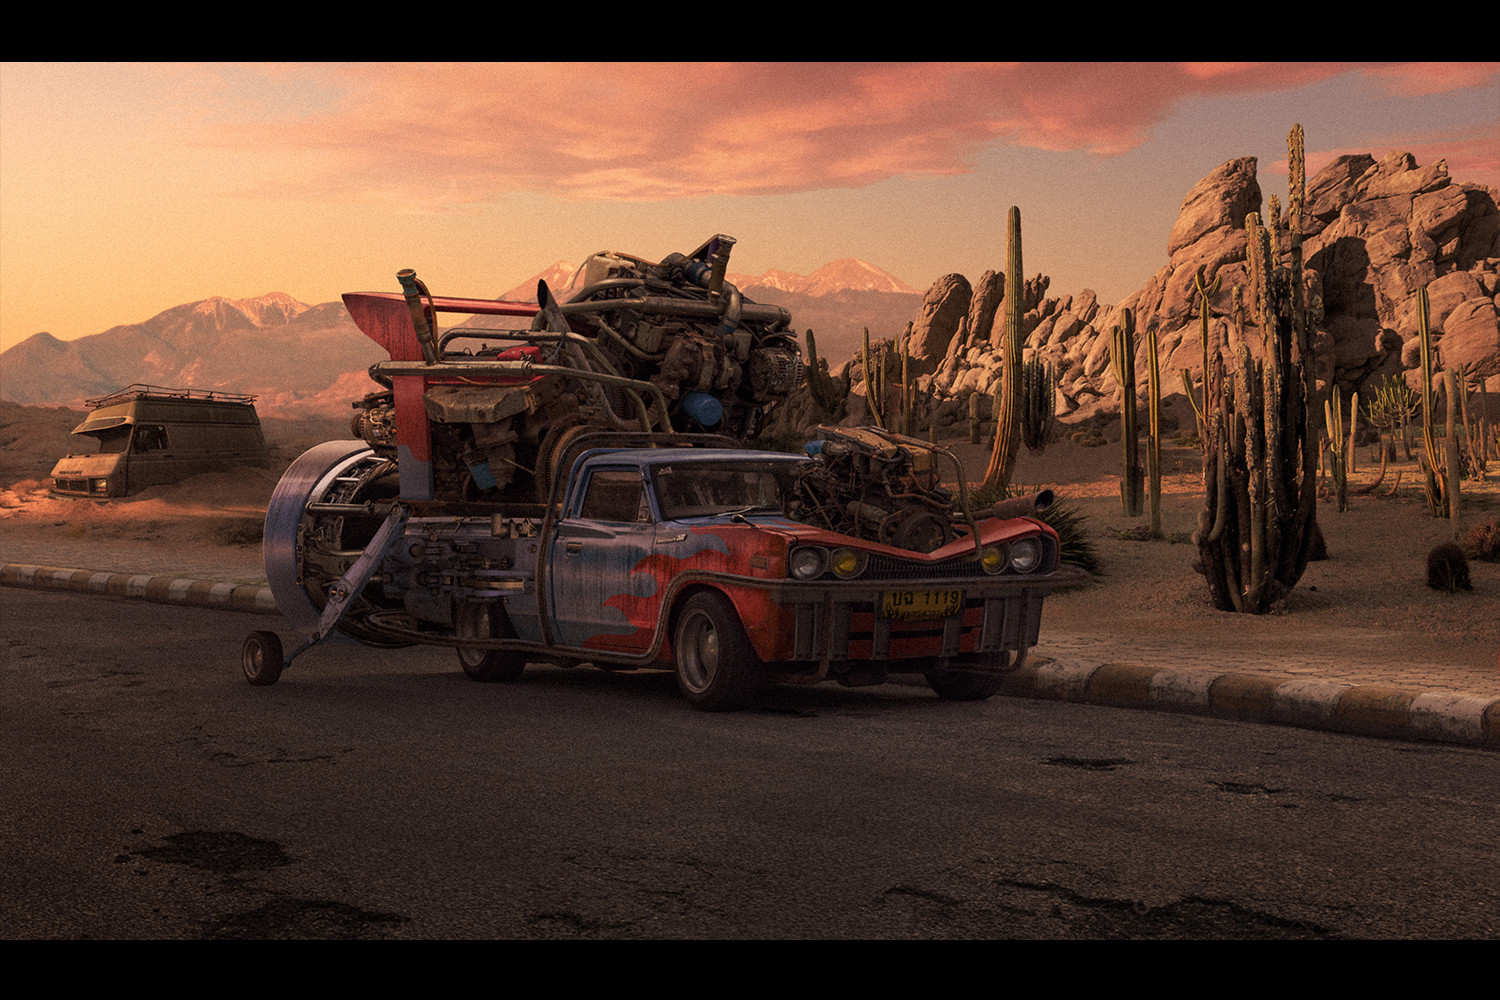 Turbo Car - Personal Matte Painting